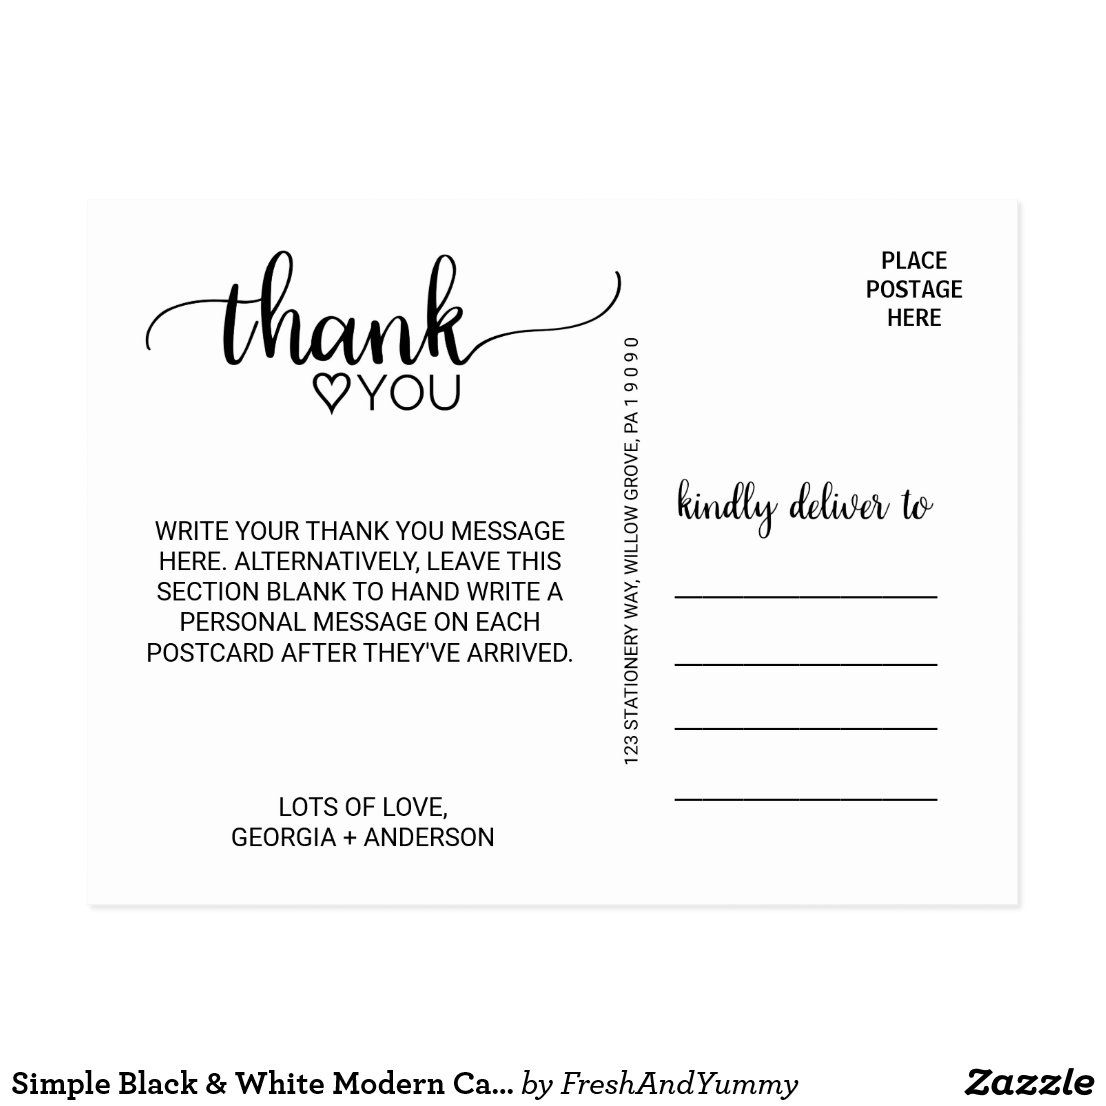 Simple Black Calligraphy Thank You Postcard Zazzle Com Thank You Postcards Calligraphy Thank You Postcard